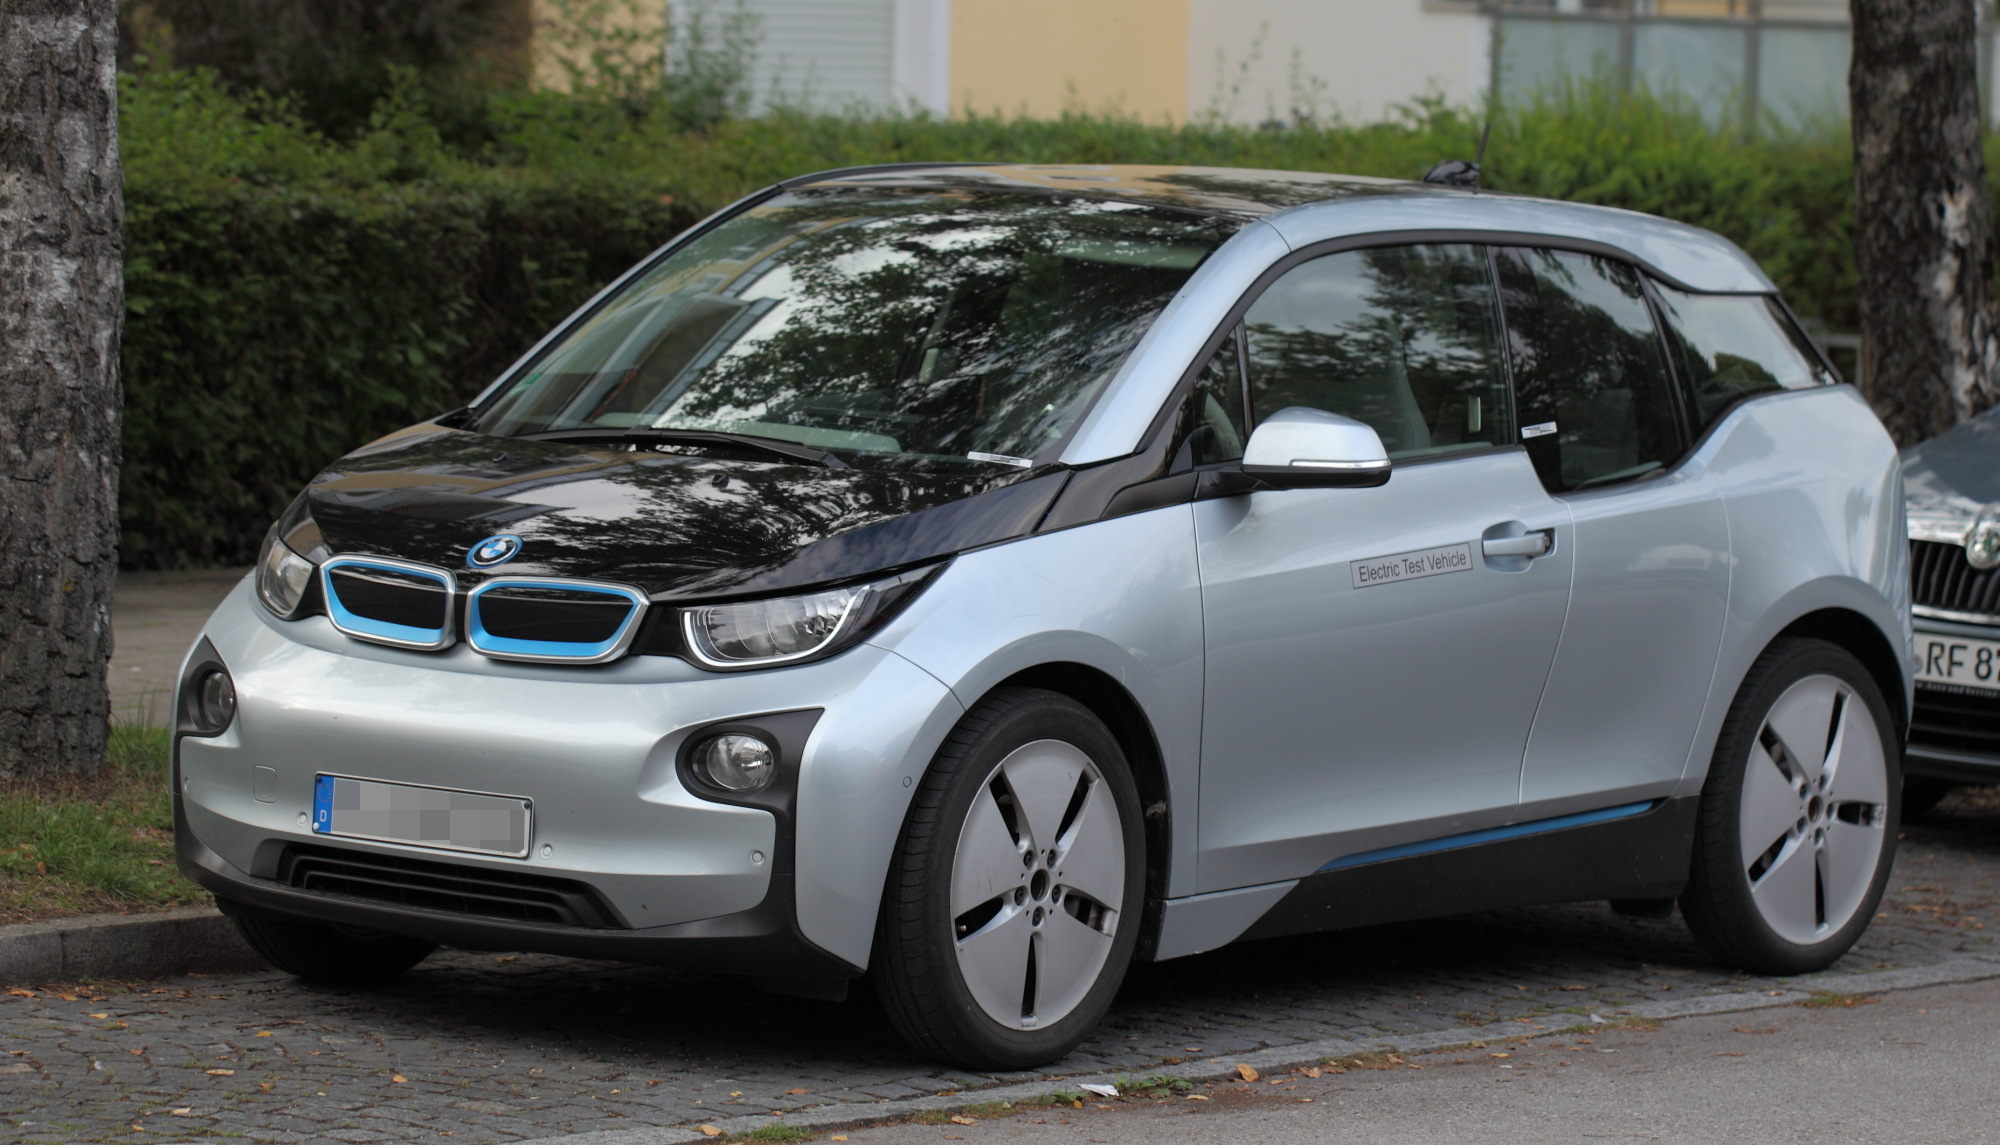 file bmw i3 electric test vehicle wikimedia commons. Black Bedroom Furniture Sets. Home Design Ideas